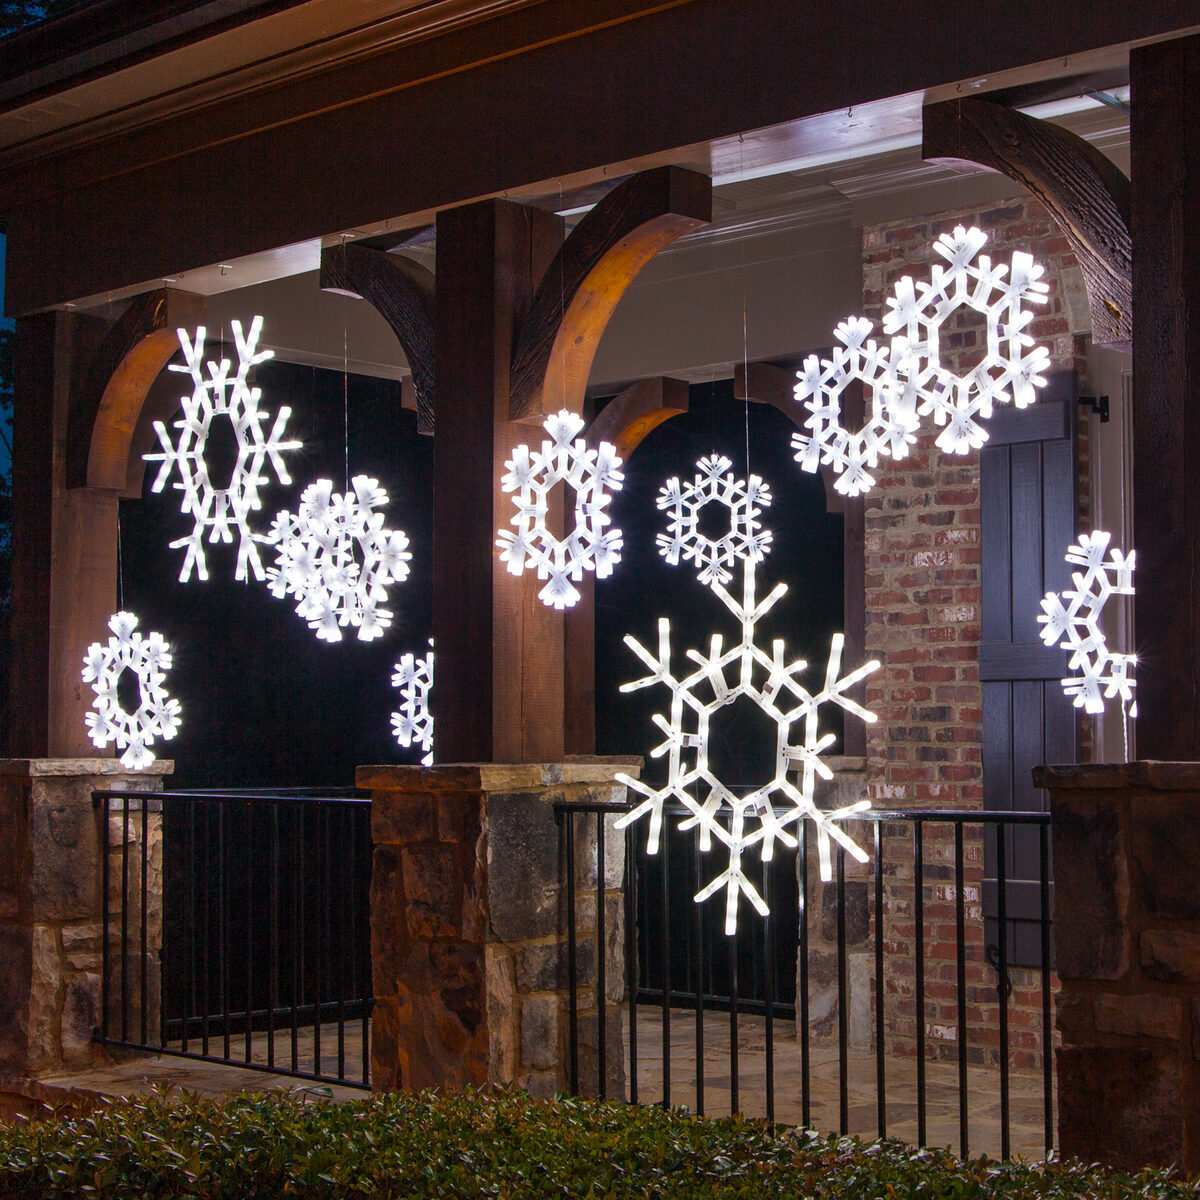 Hang snowflakes across the porch for Christmas. Snowflake Porch Decorations